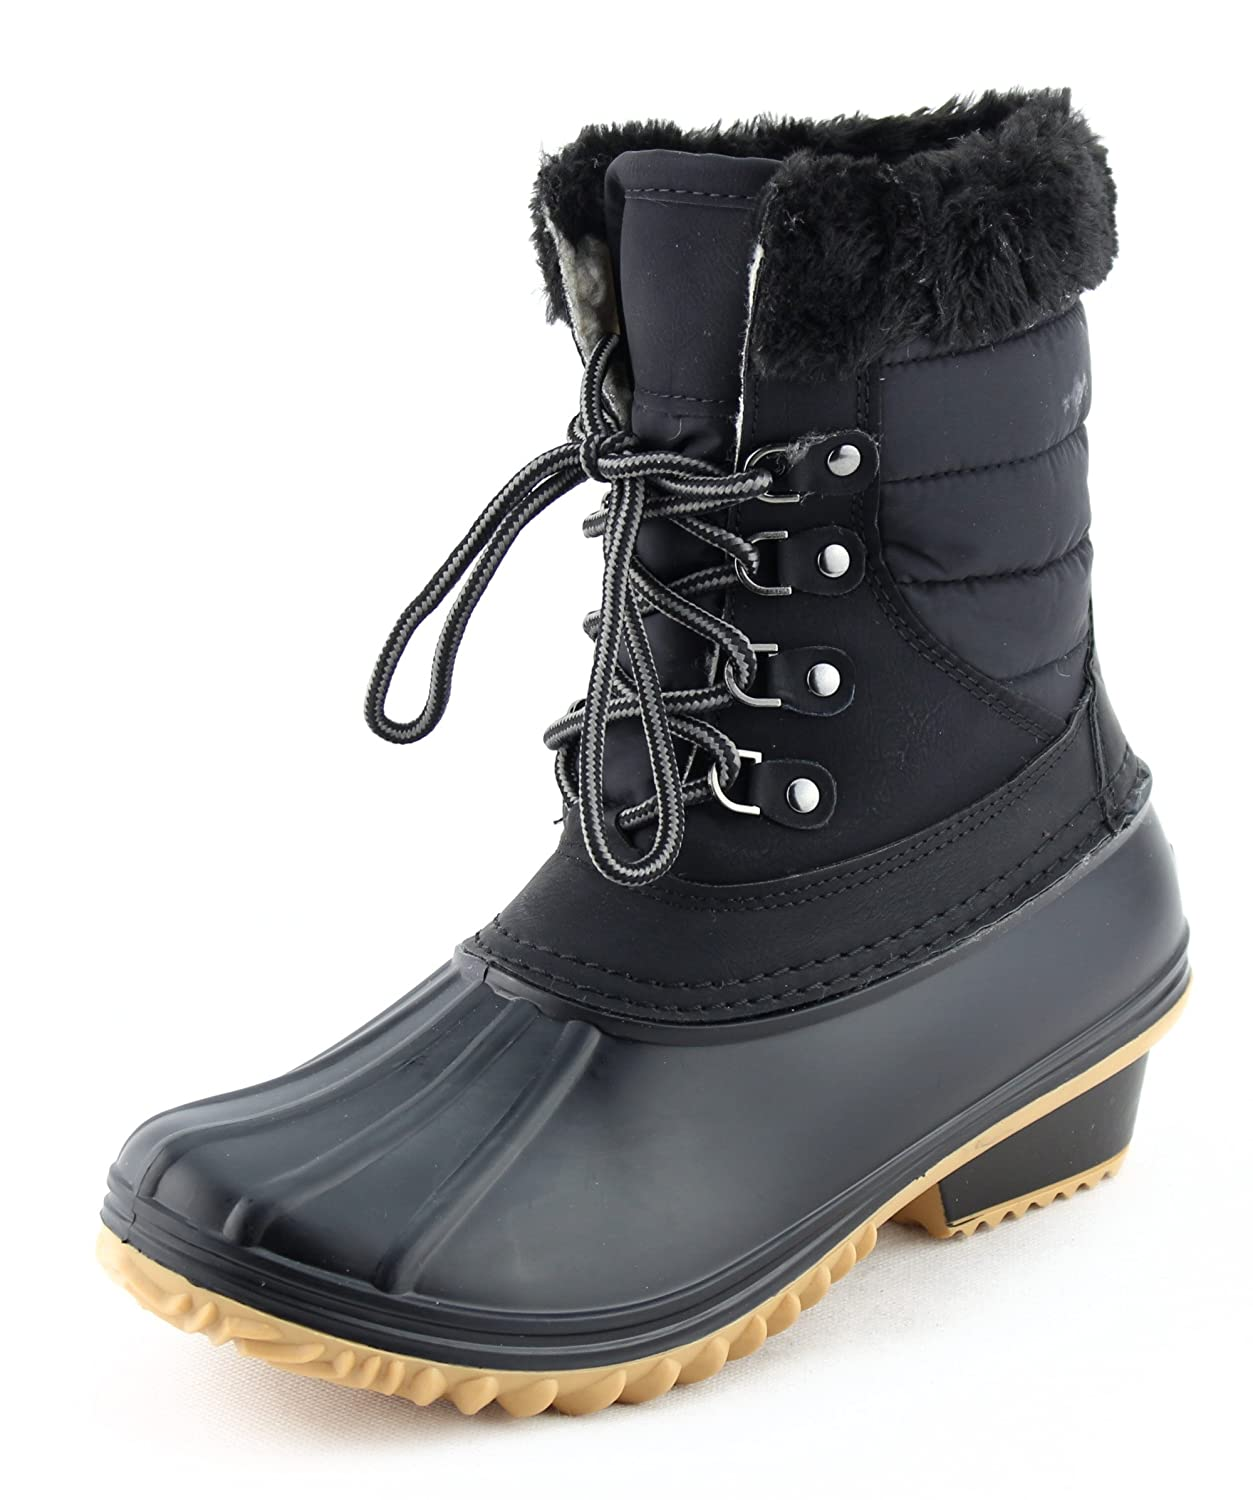 CALICO KIKI Women's Lace Up Warm Water Resistant Fur Padded Winter Snow Duck Boots B078KHHFMD 8 B(M) US|Black